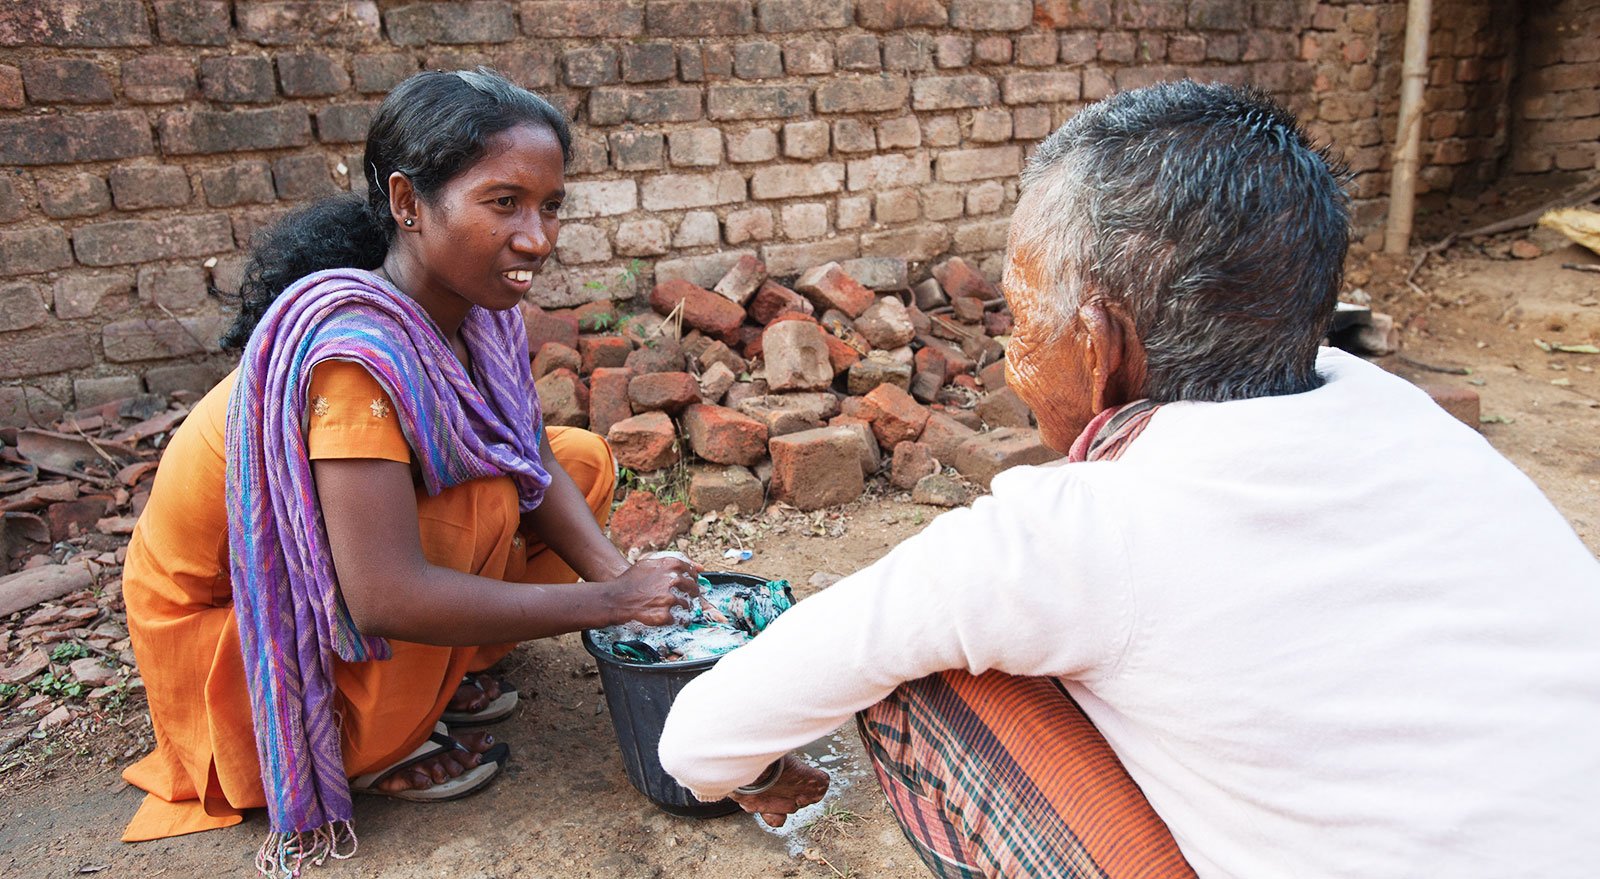 Sakshi, who ministered to leprosy patients, once had leprosy herself before Jesus healed her.